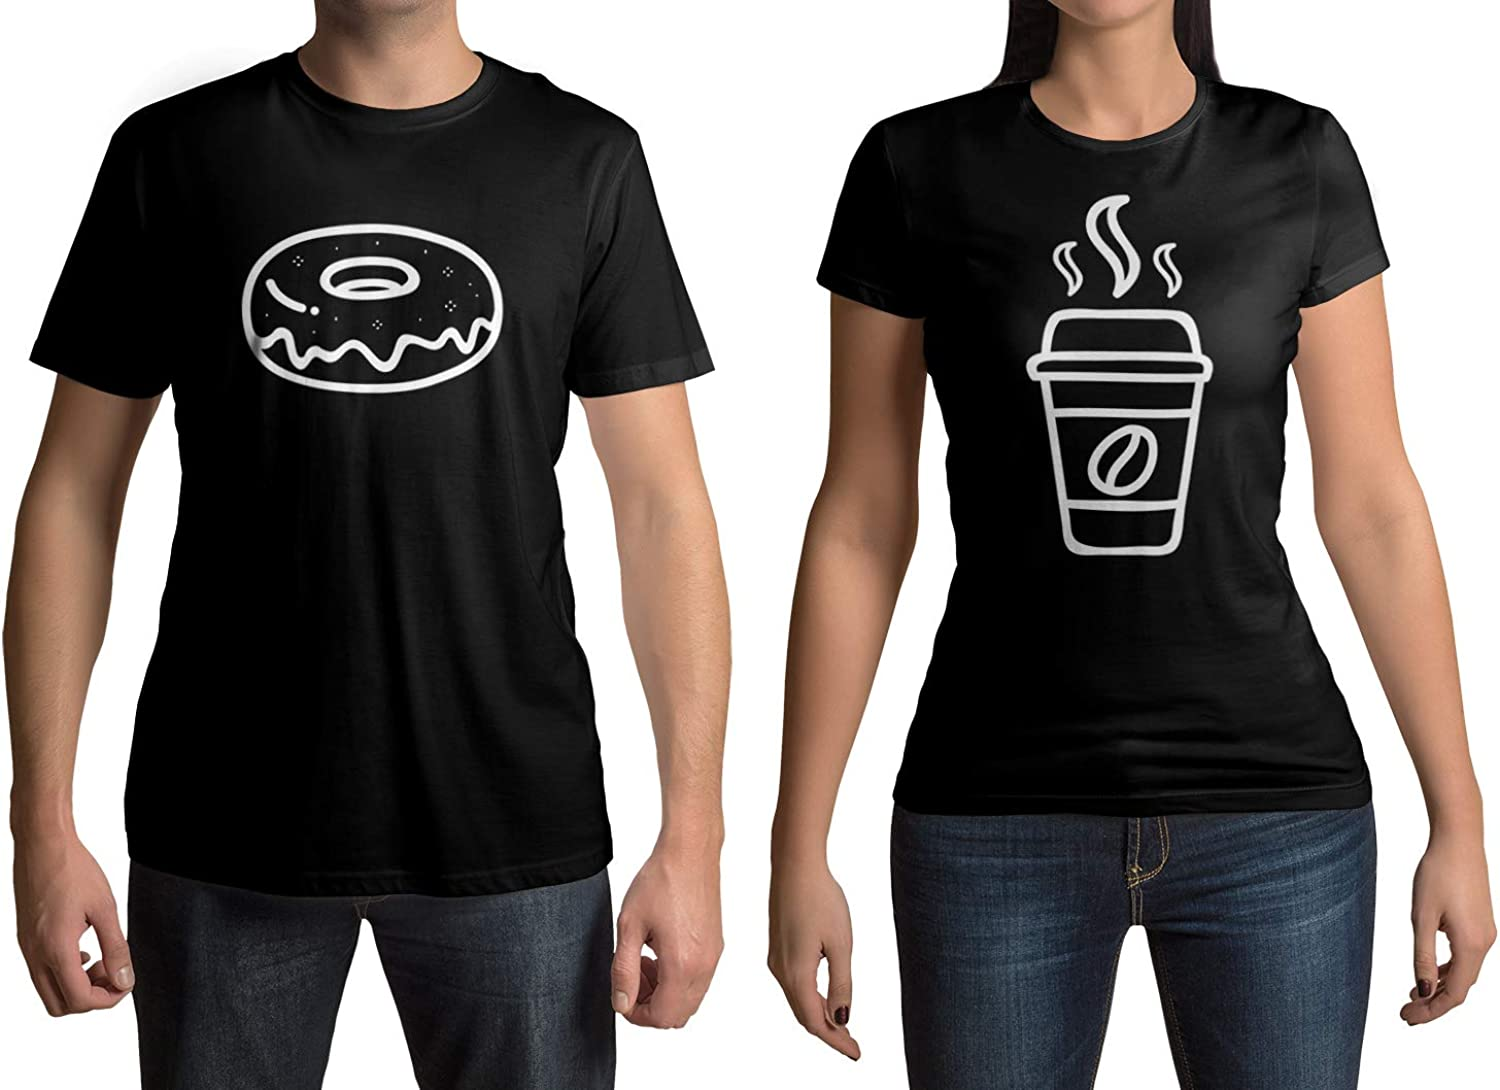 Threadrock Coffee & Donut Men's & Women's Matching Couples T-Shirt Set